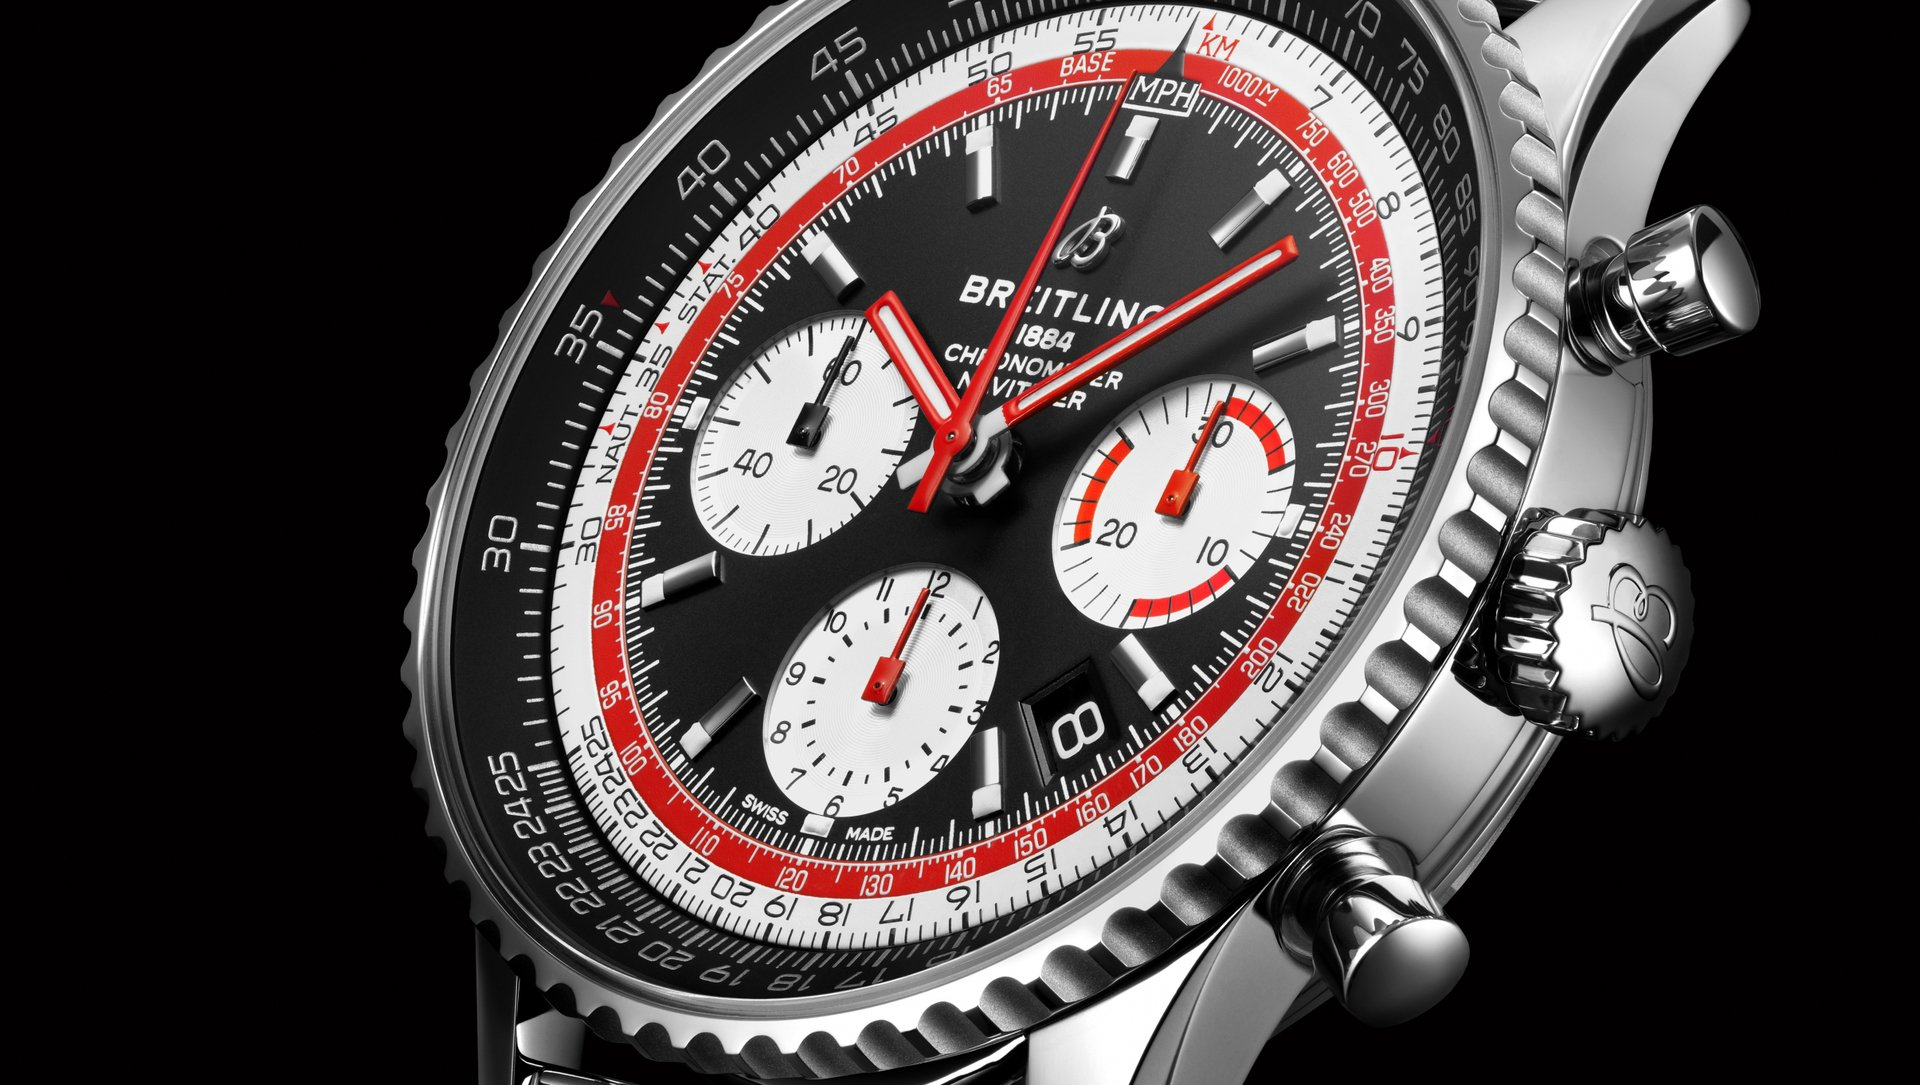 https://static.breitling.cn/media/wysiwyg/news/19-1-10/1L.jpg